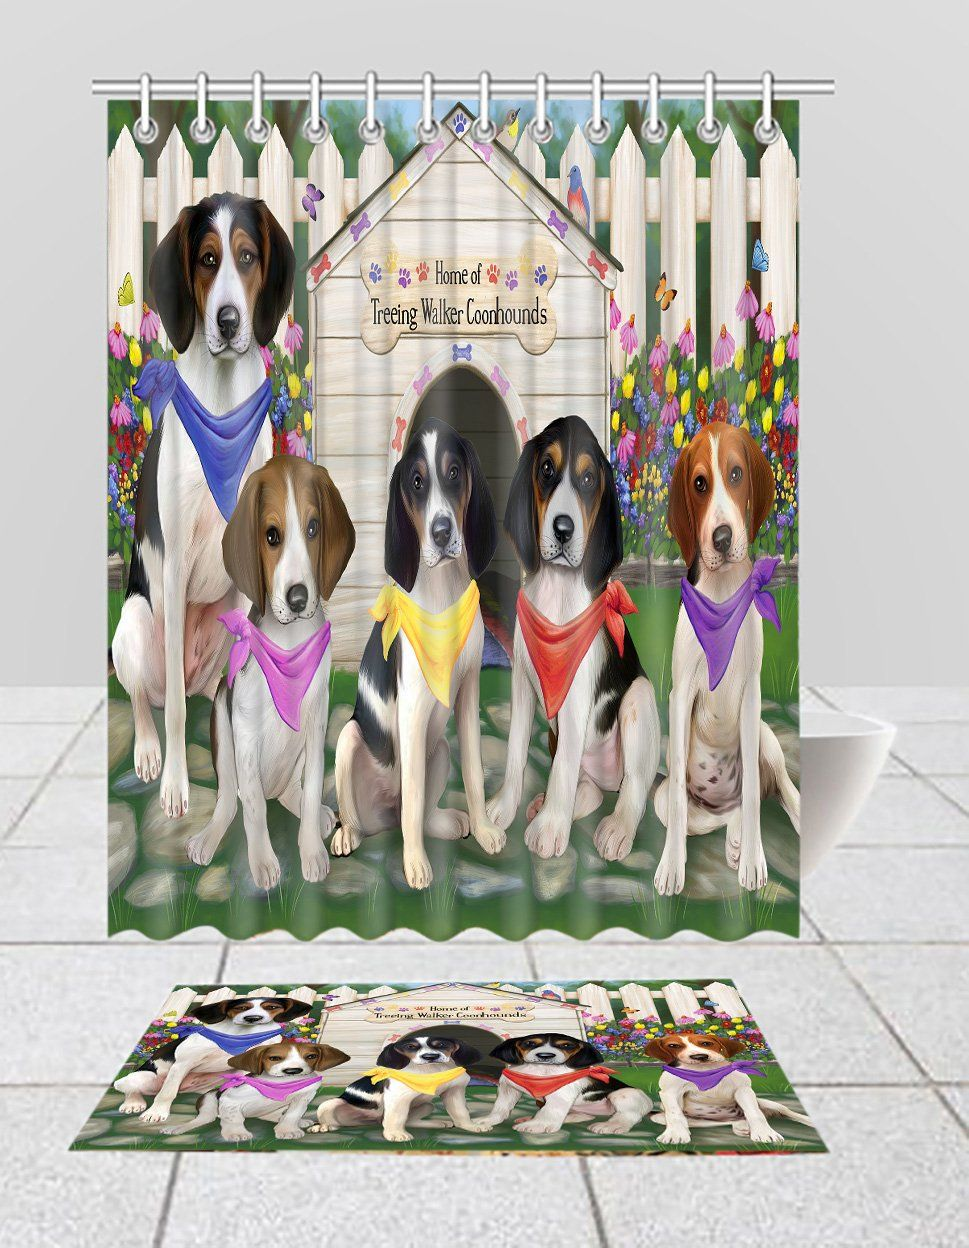 Spring Dog House Treeing Walker Coonhound Dogs Bath Mat And Shower